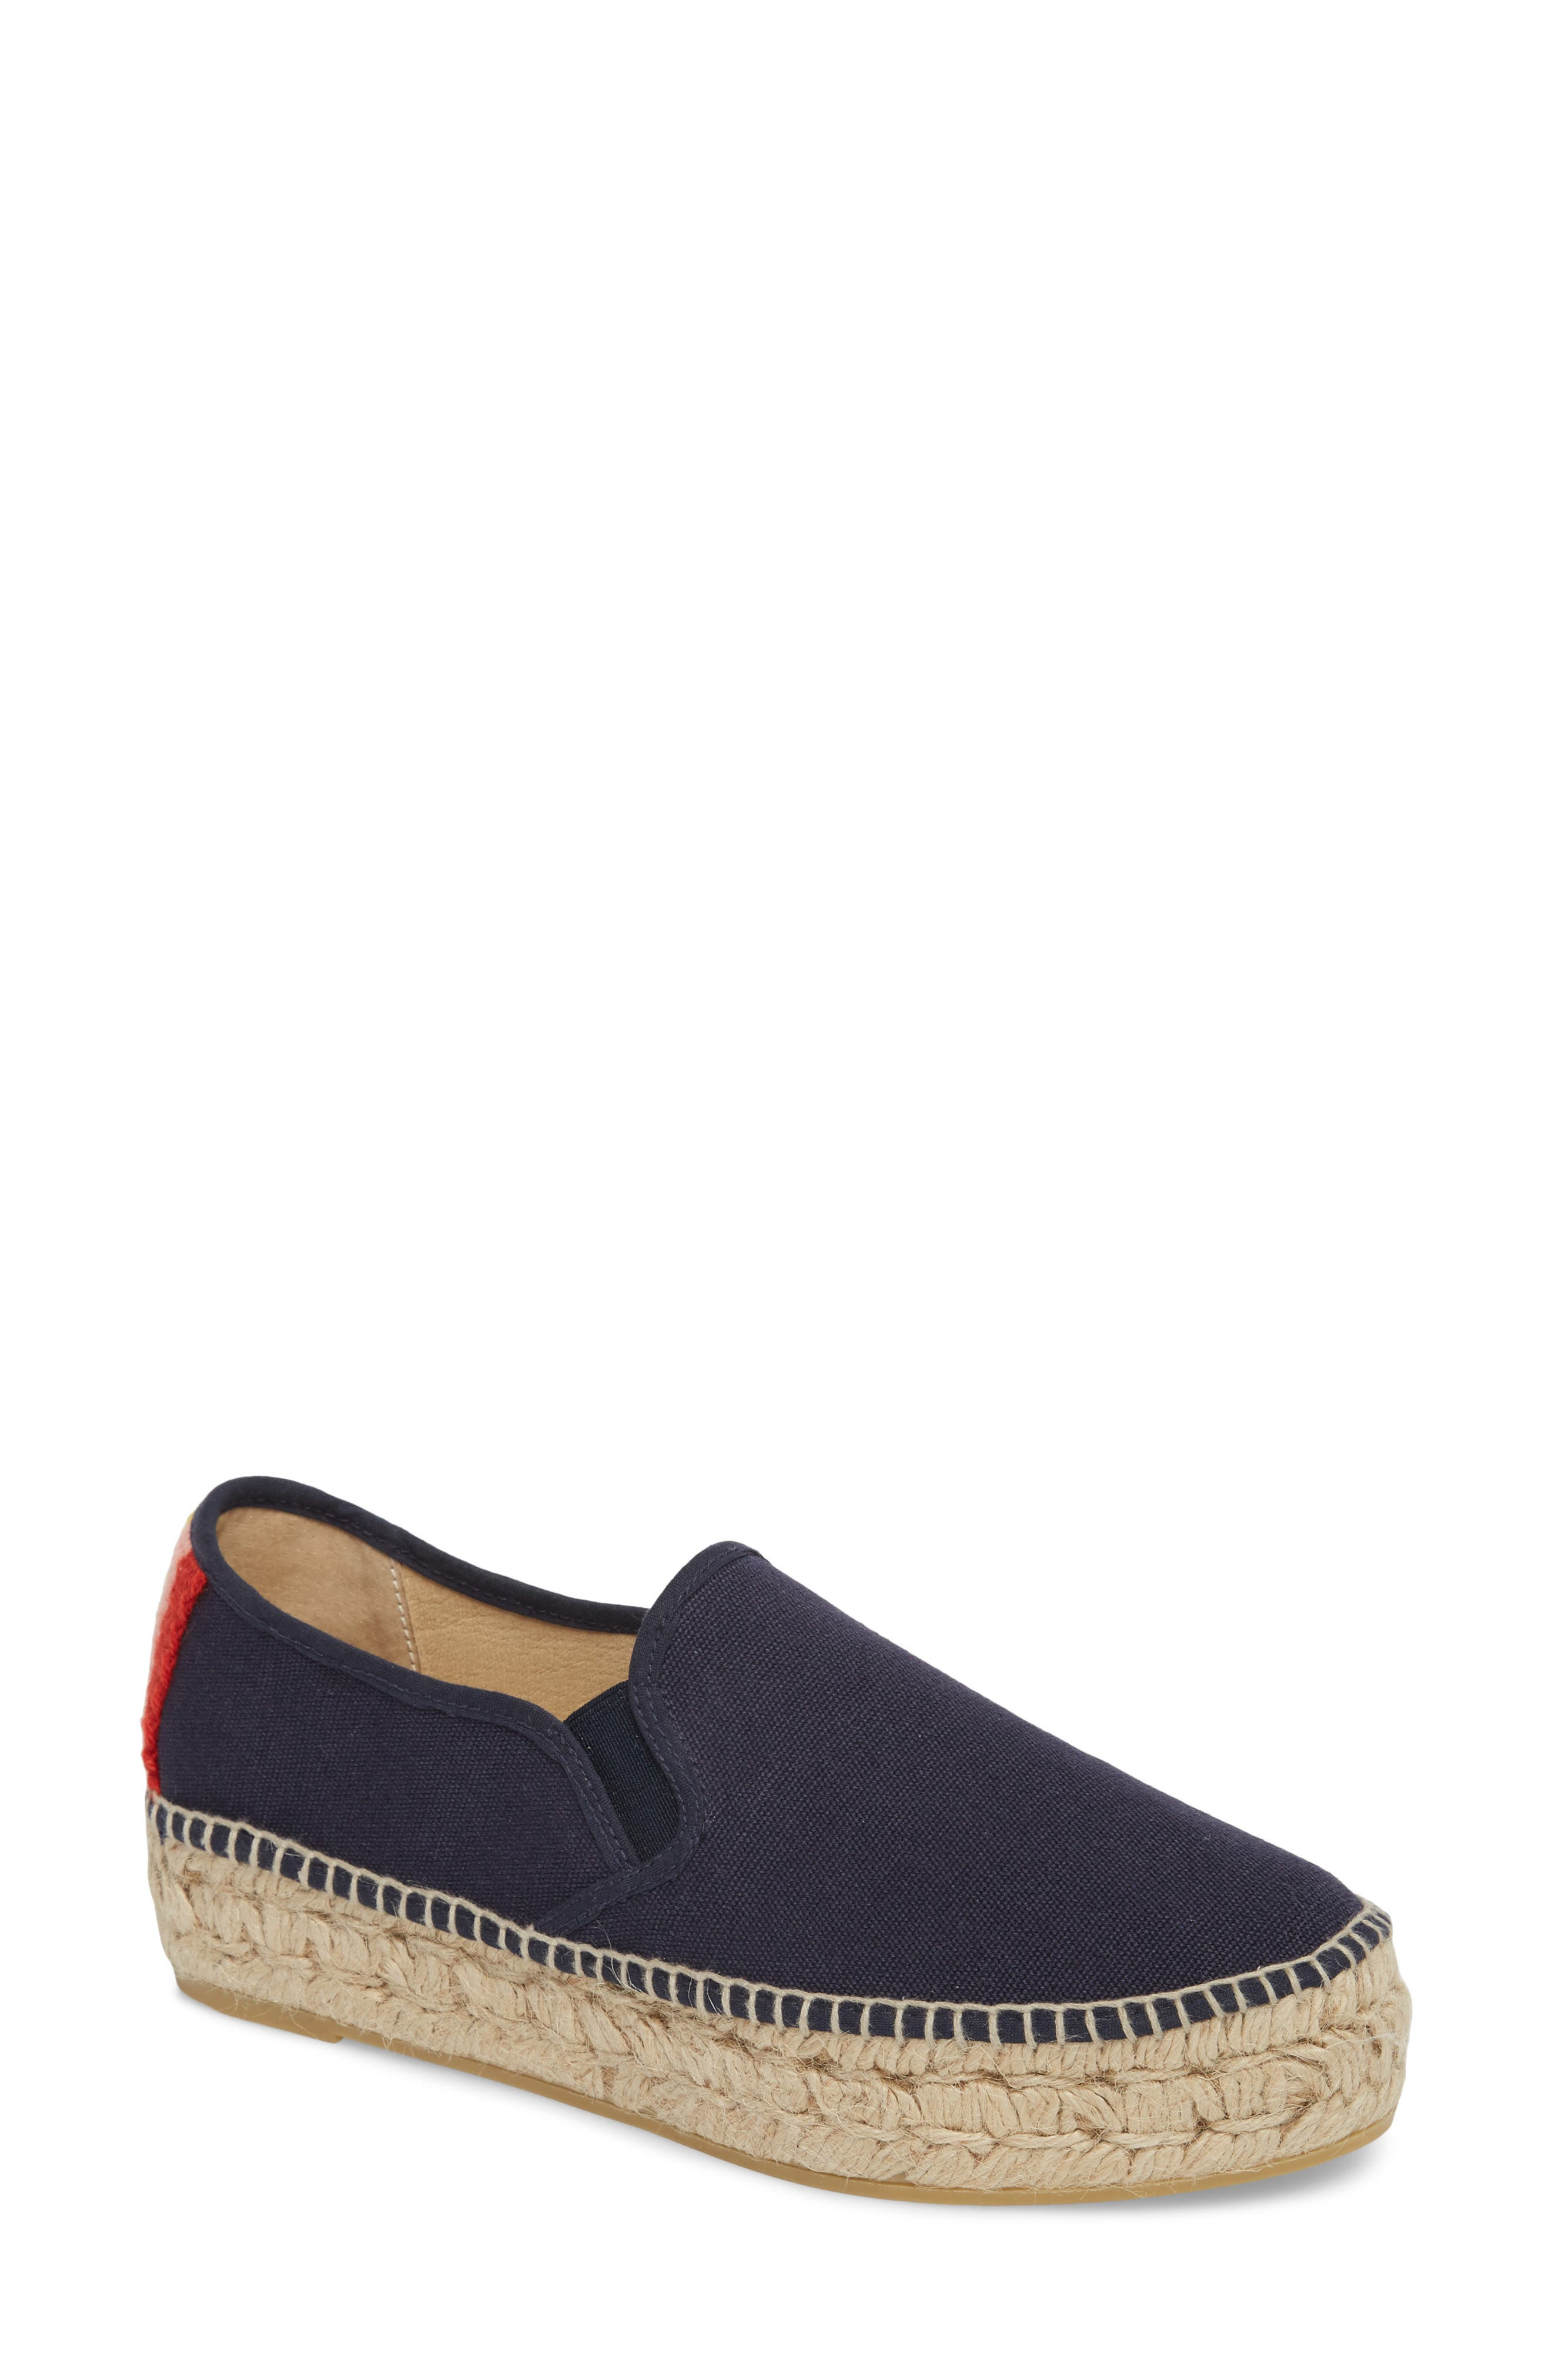 Alternate Image 1 Selected - Loeffler Randall Rowan Espadrille Flat (Women)